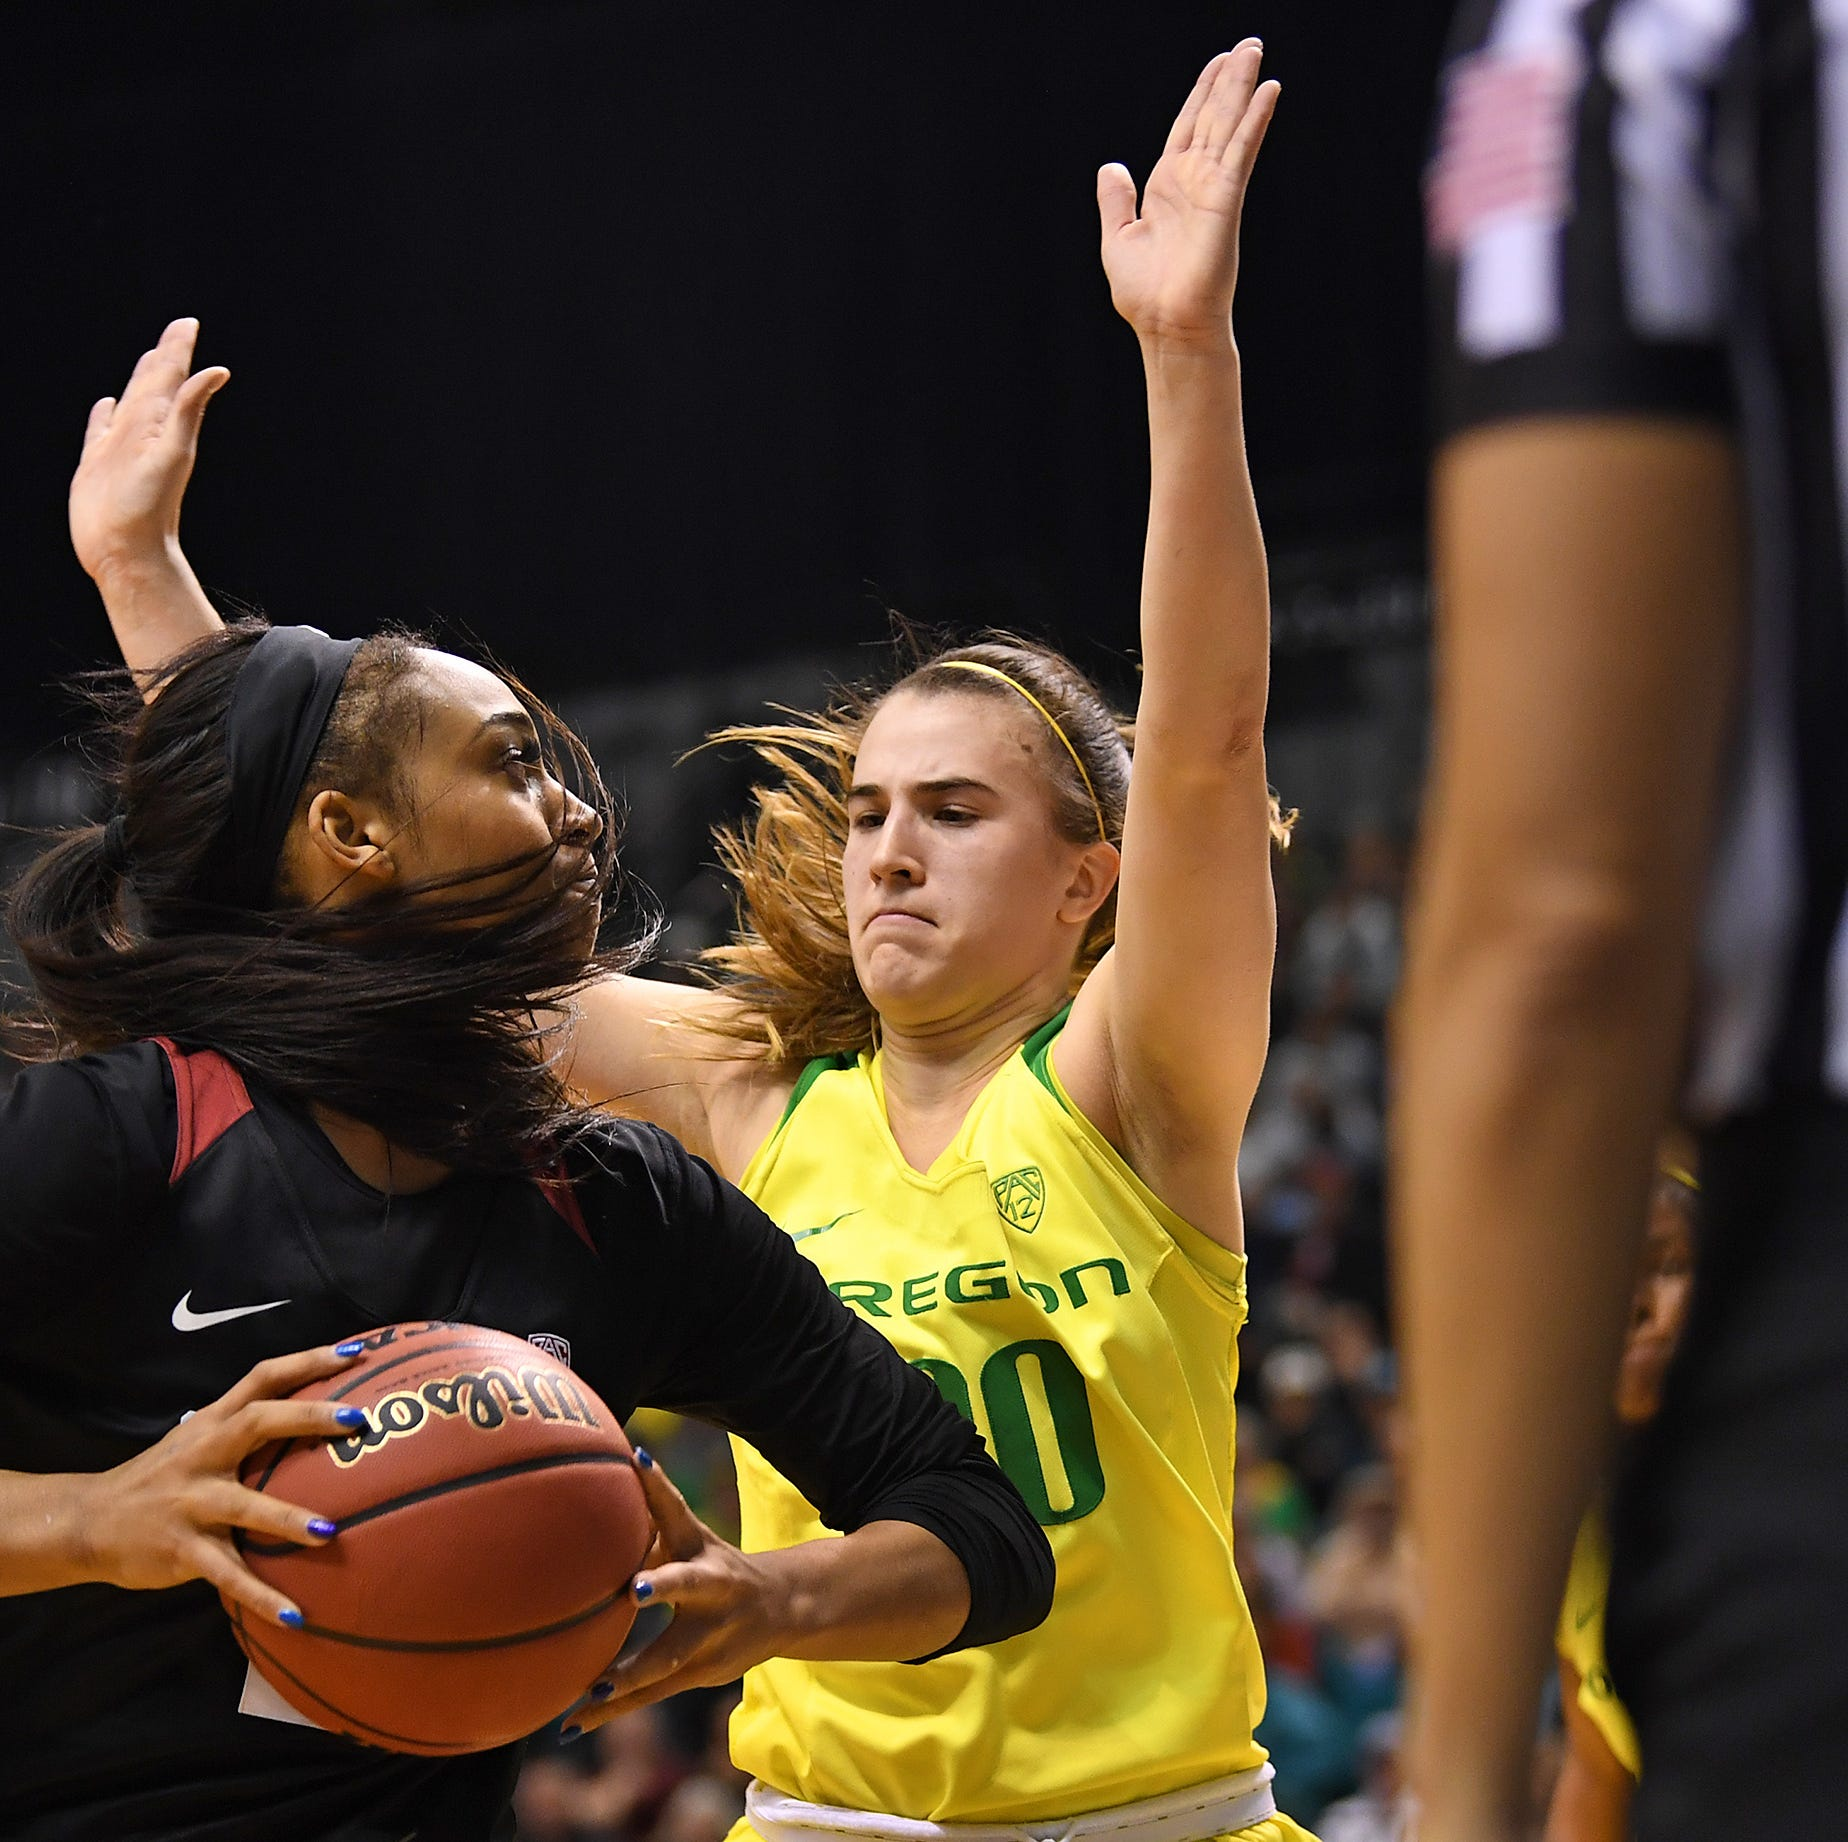 Oregon Ducks women's basketball: Stanford beats Oregon to win Pac-12 Tournament title